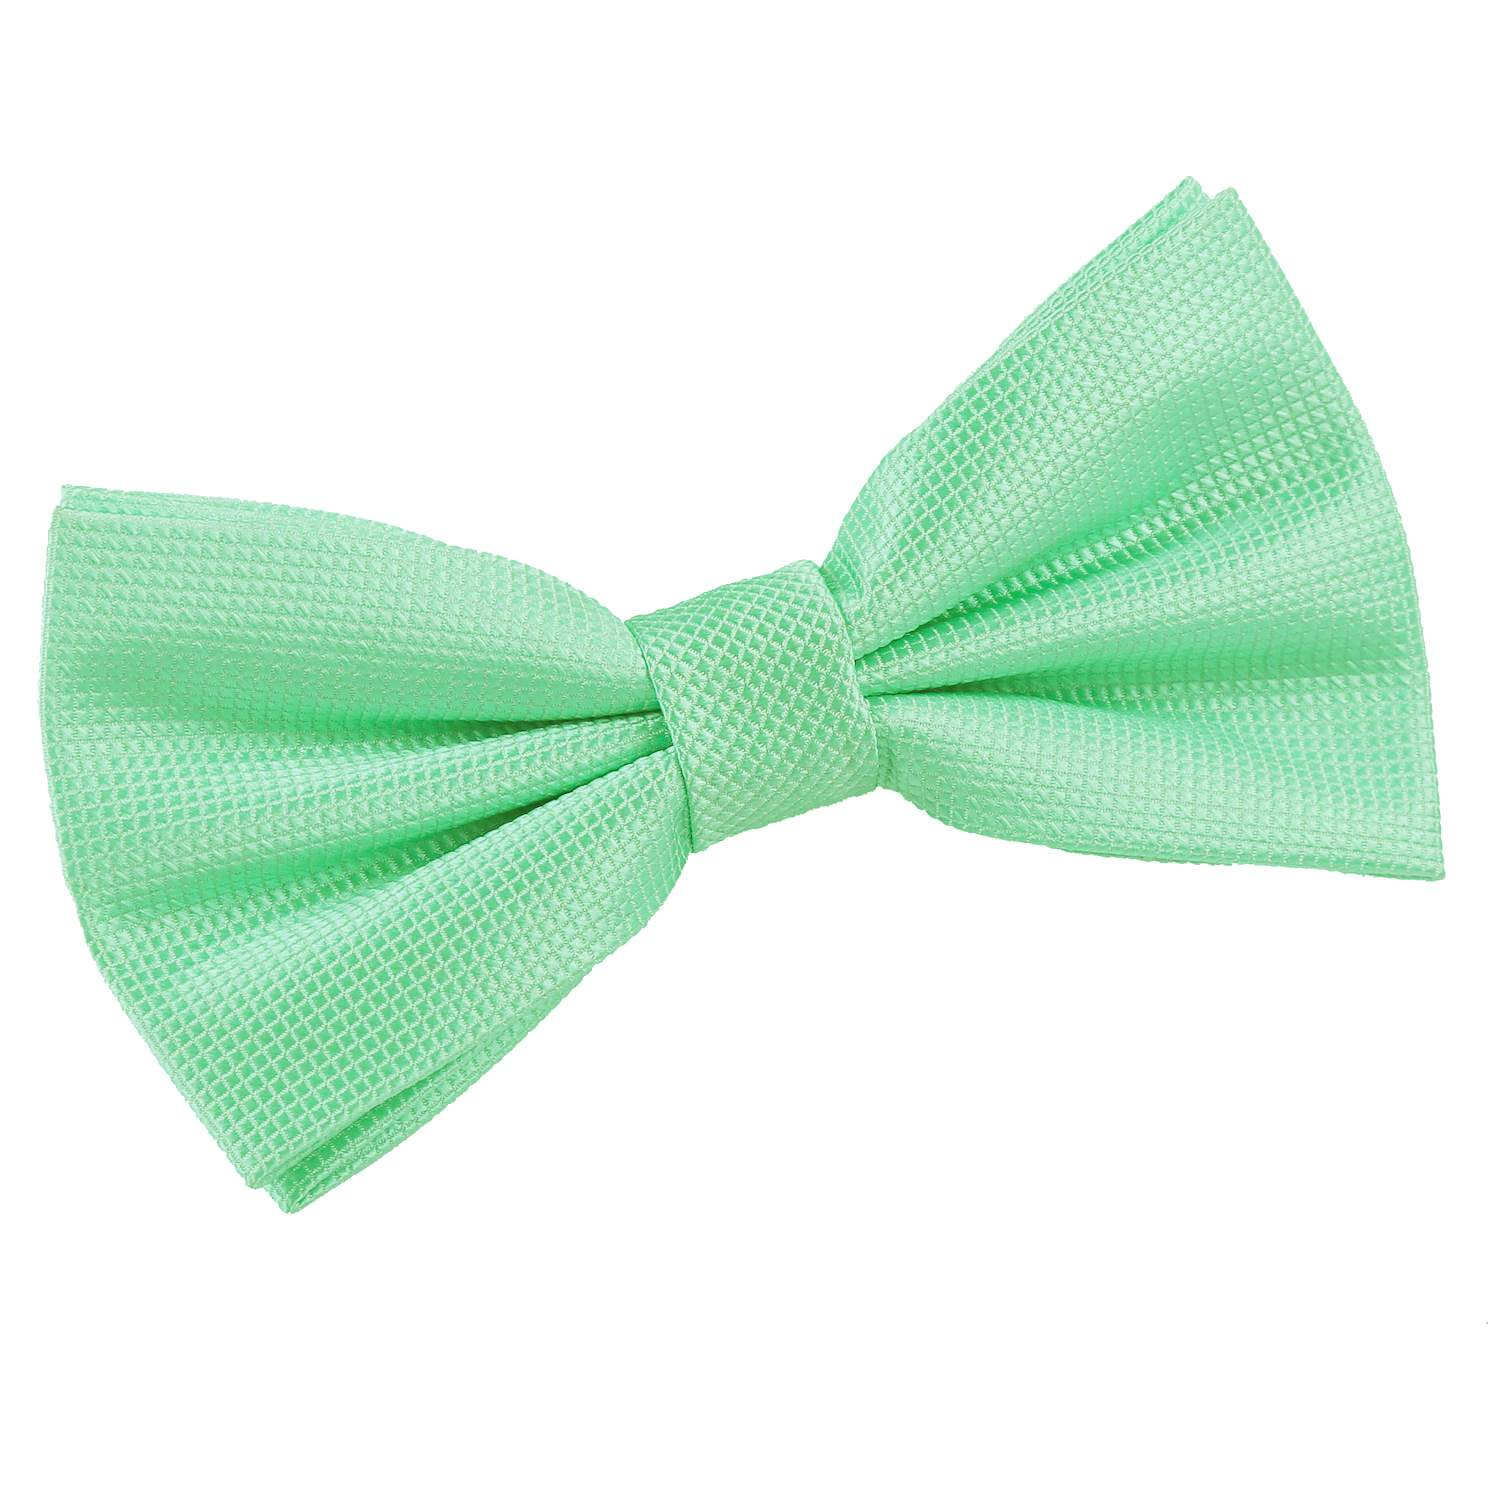 In the men's formal fashion sphere even the simplest colors can prove to be very refreshing, like the shade of green featured in this collection of mint green cummerbund sets.